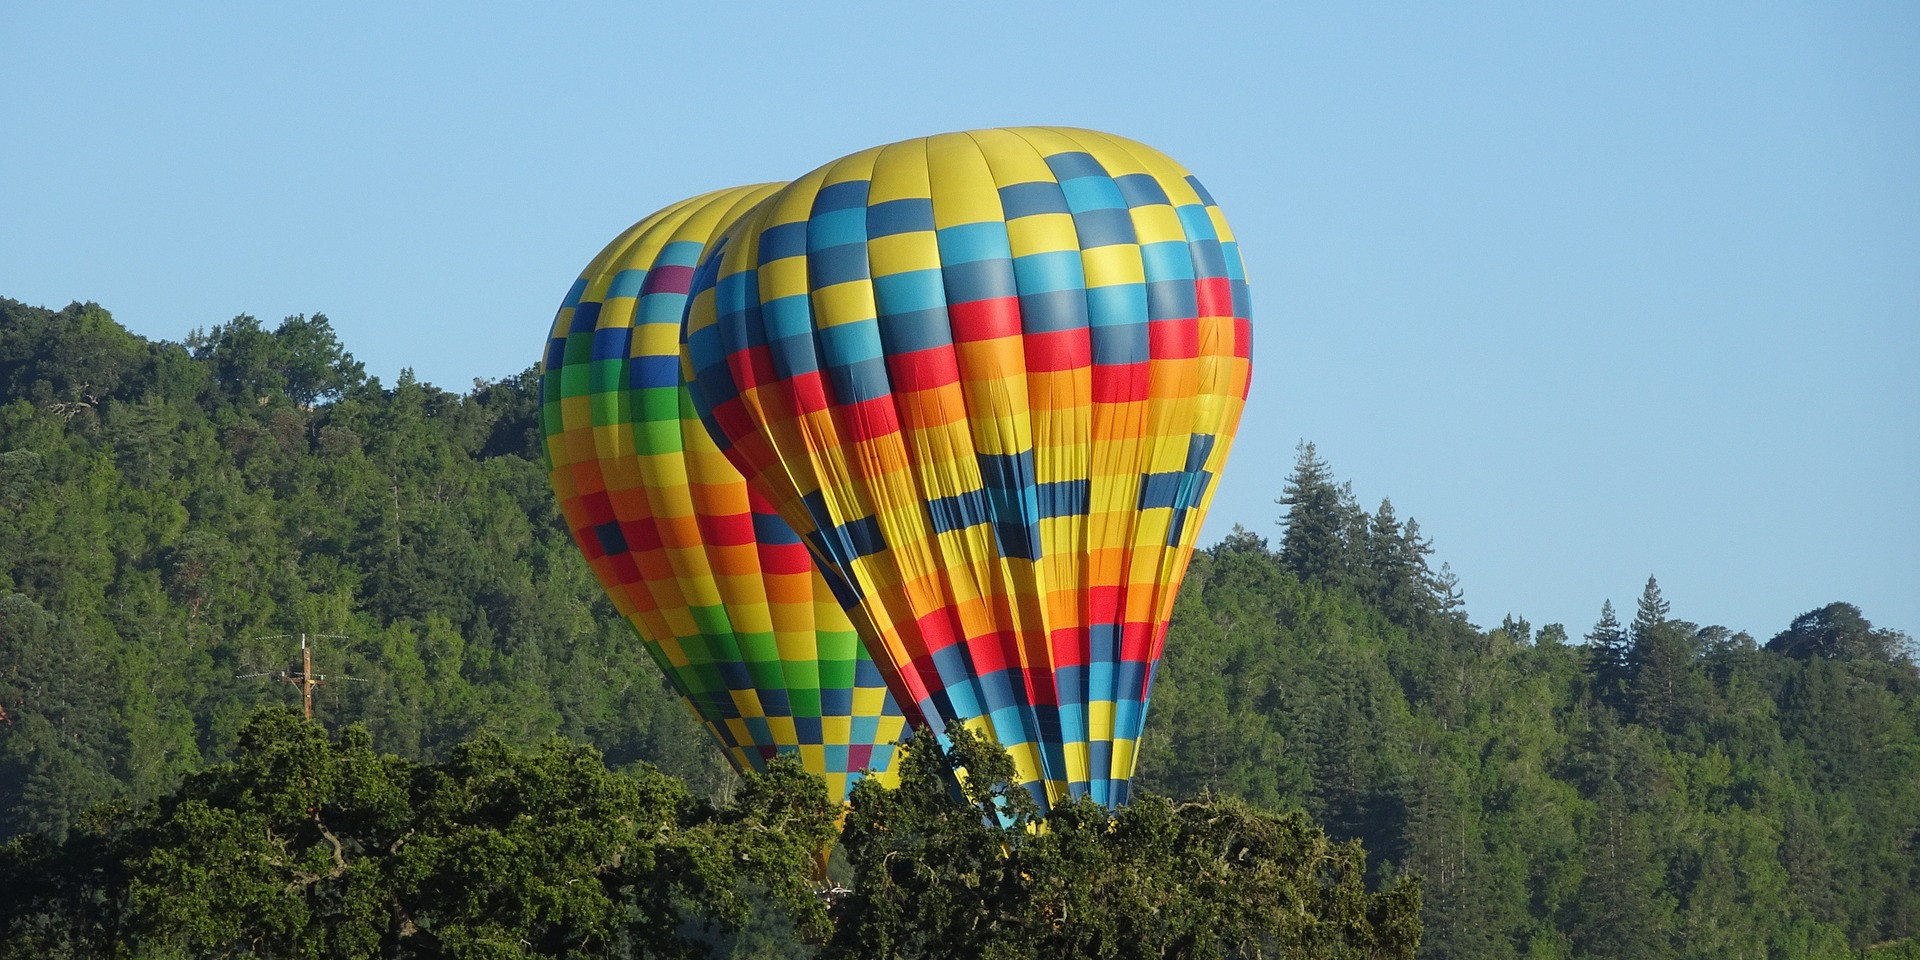 hot-air-balloon-2456522_1920.jpg